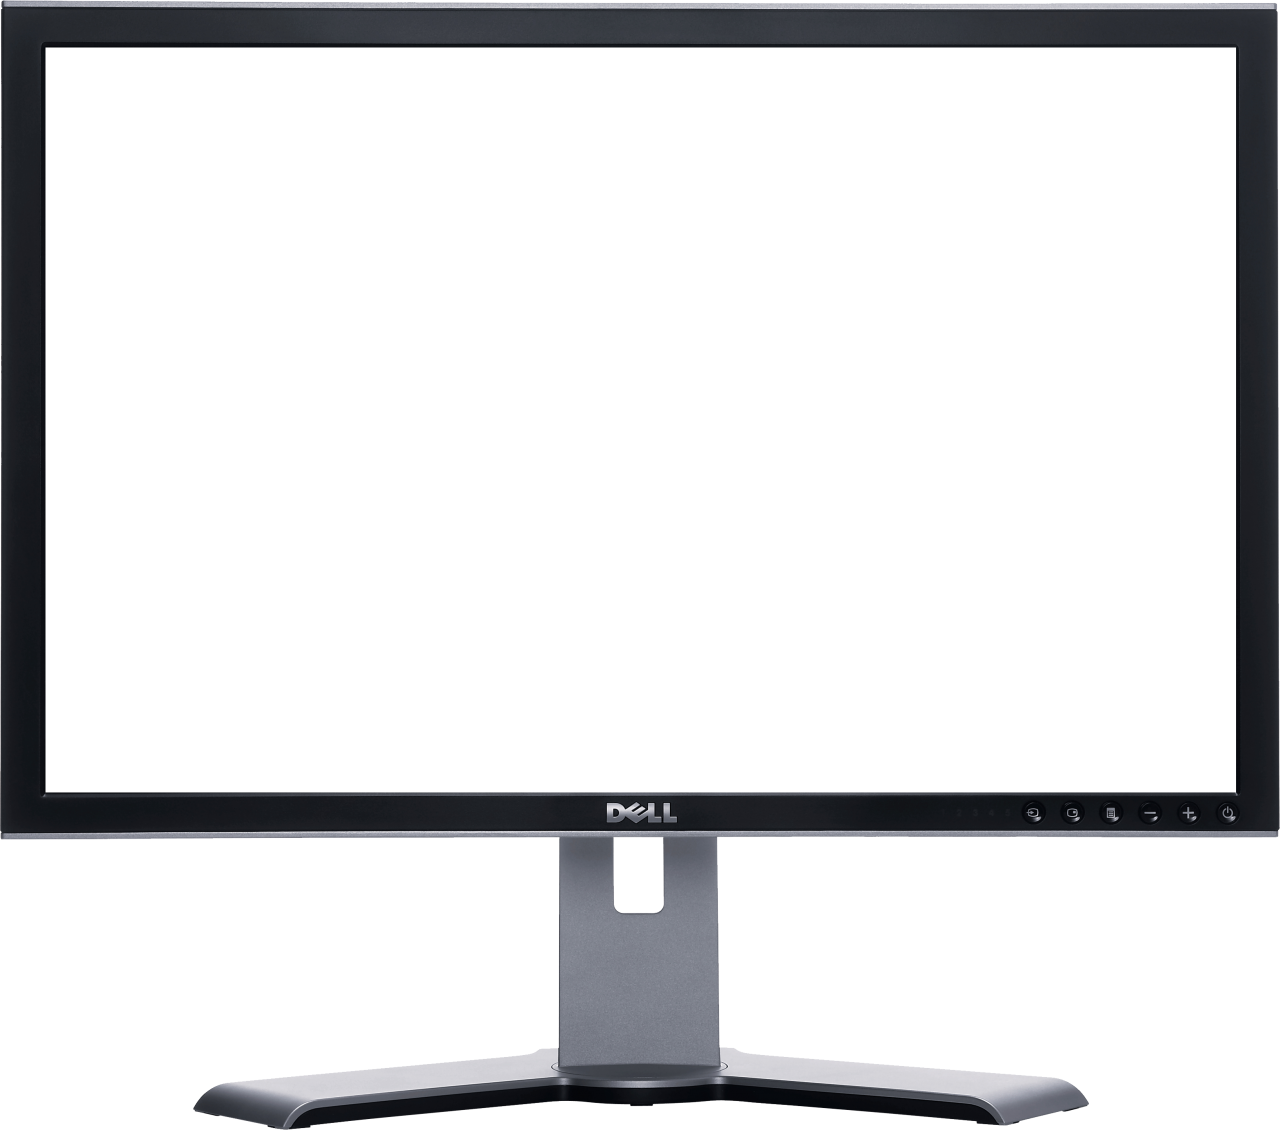 Dell Monitor PNG Image.